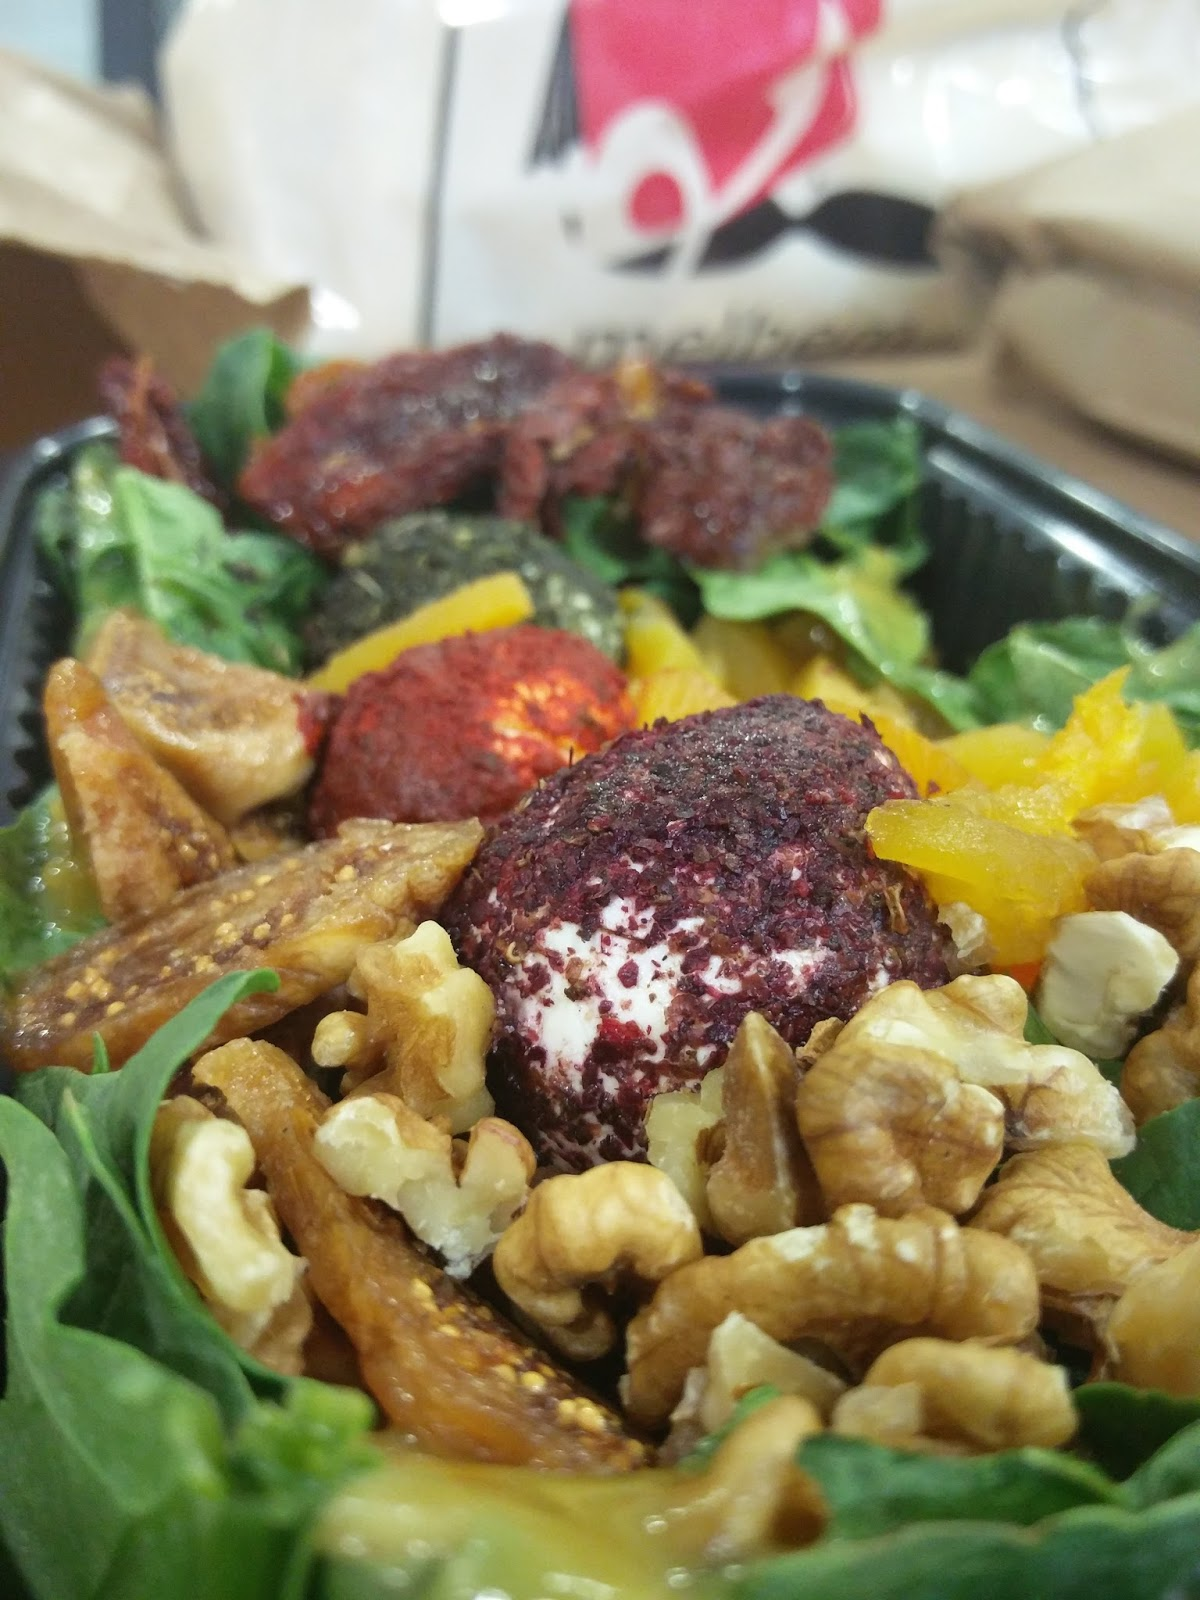 Food Delivery Options In Long Islands